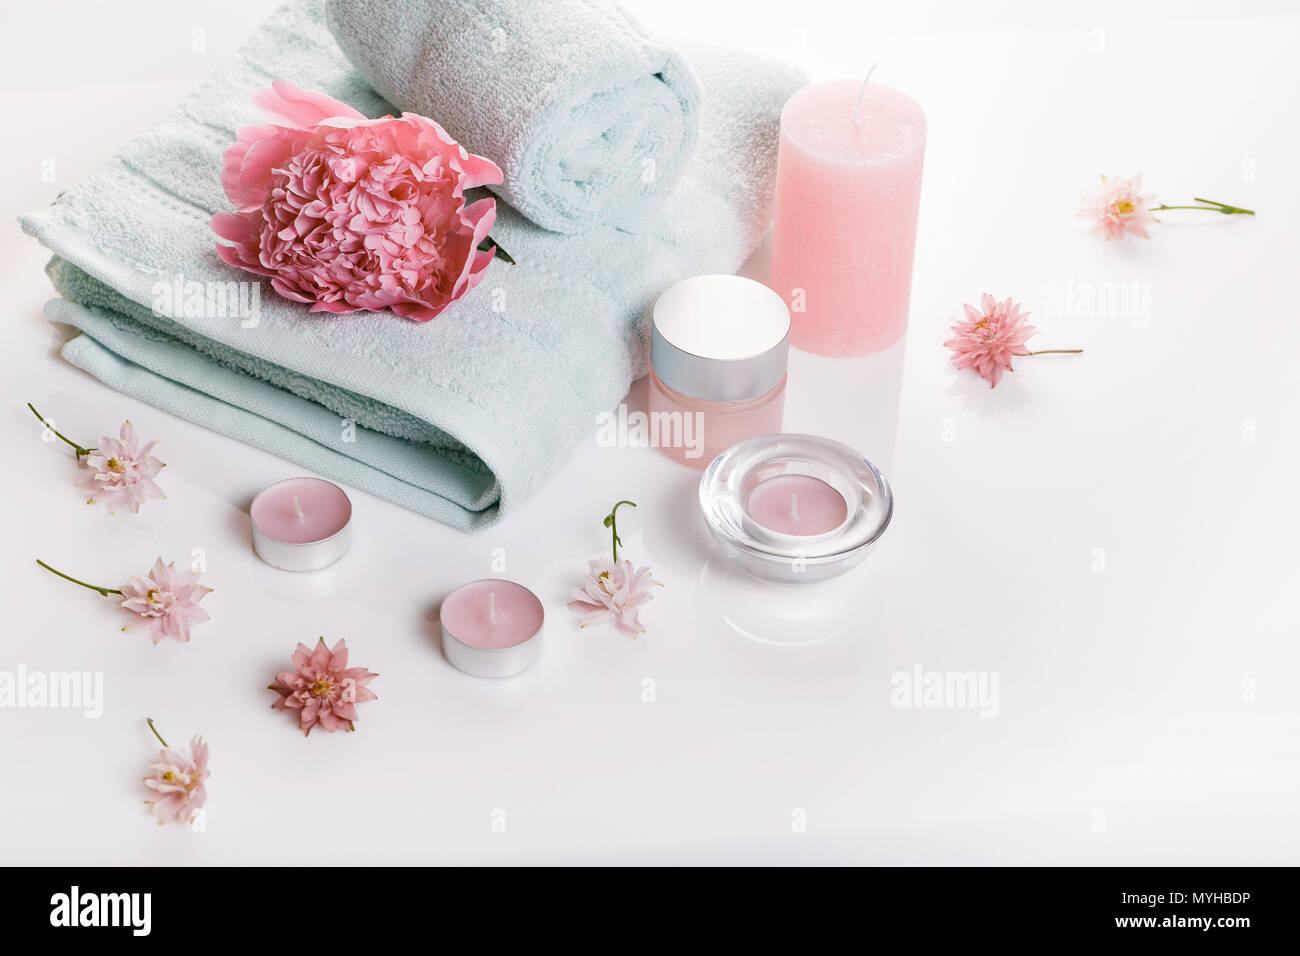 Wellness decoration, Spa concept in Valentine's Day - Stock Image